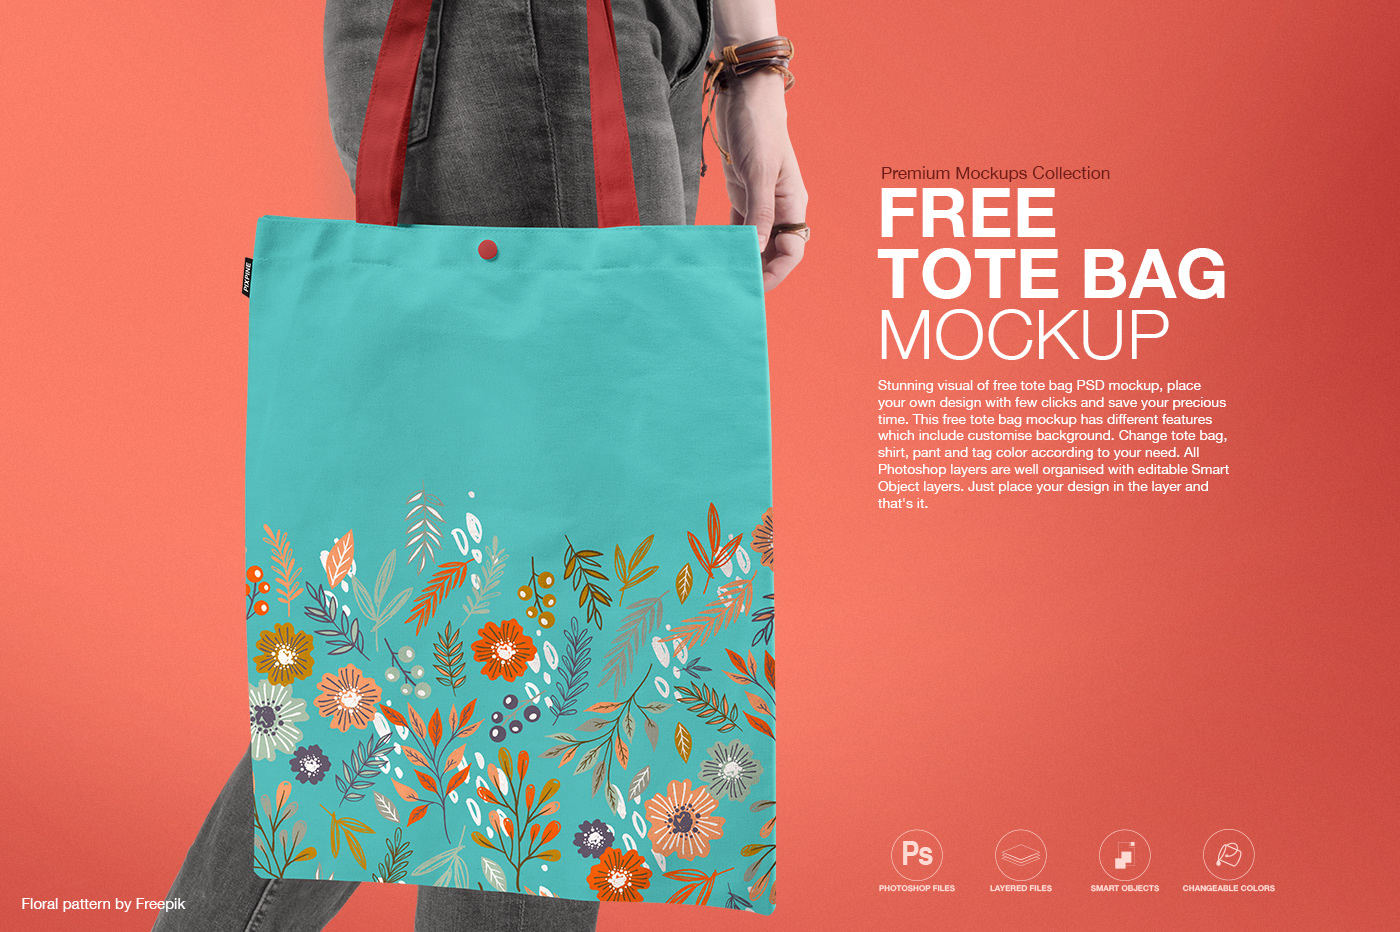 Stunning visual of free tote bag psd mockup, place your own design with few clicks and save your precious time. Free Tote Bag Psd Mockup On Behance